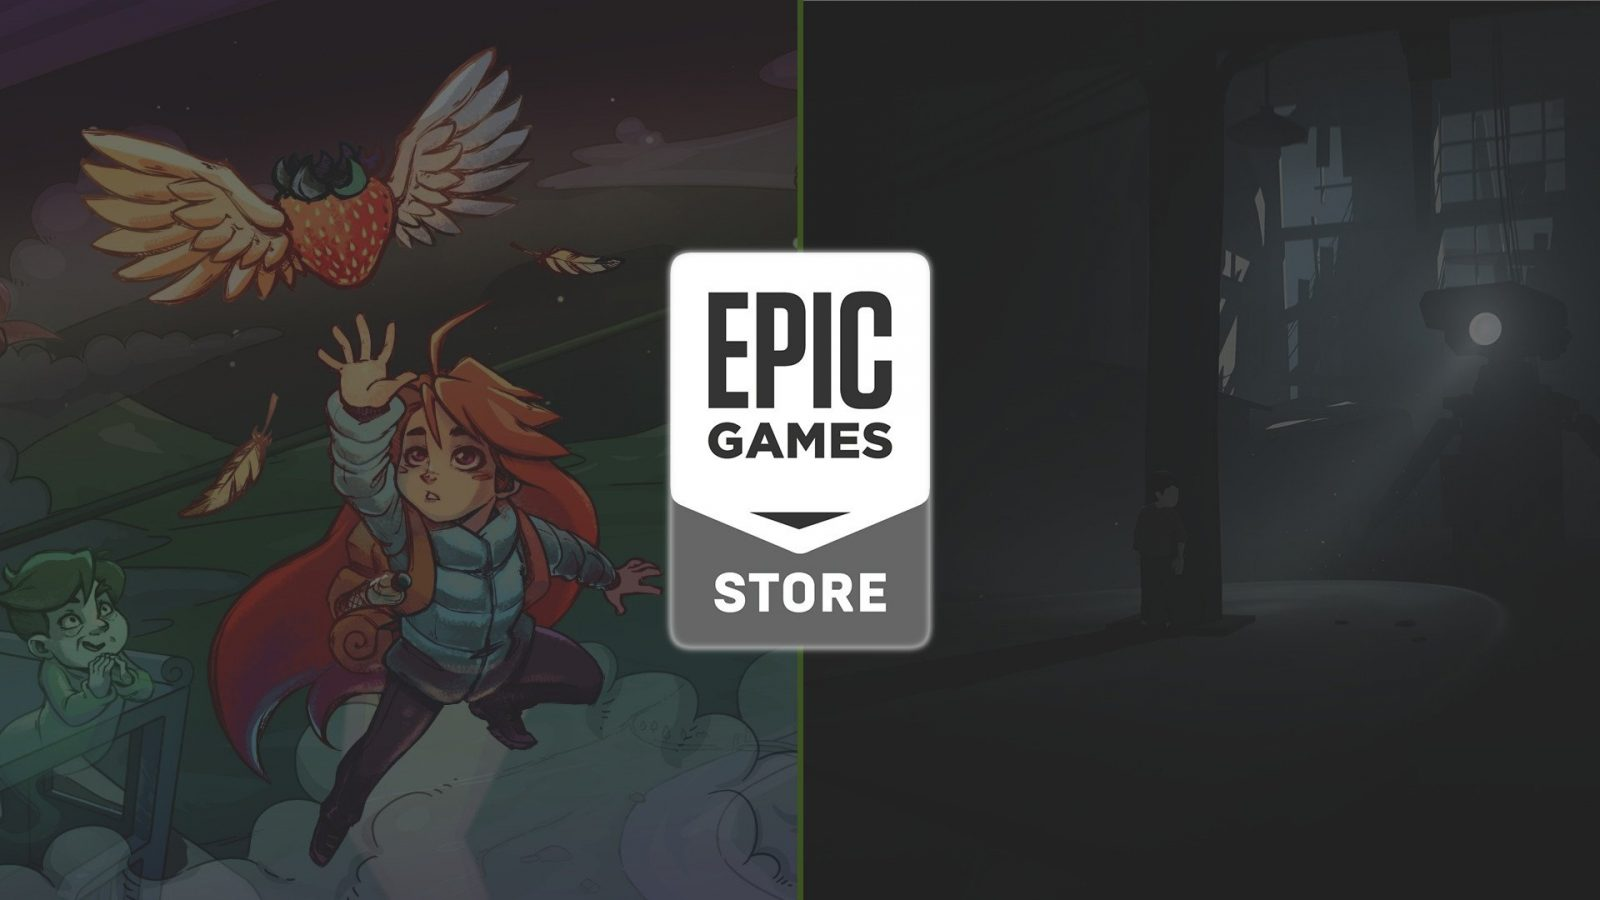 Celeste And Inside Free On Epic Games Store From Next Week, Fez Free Now